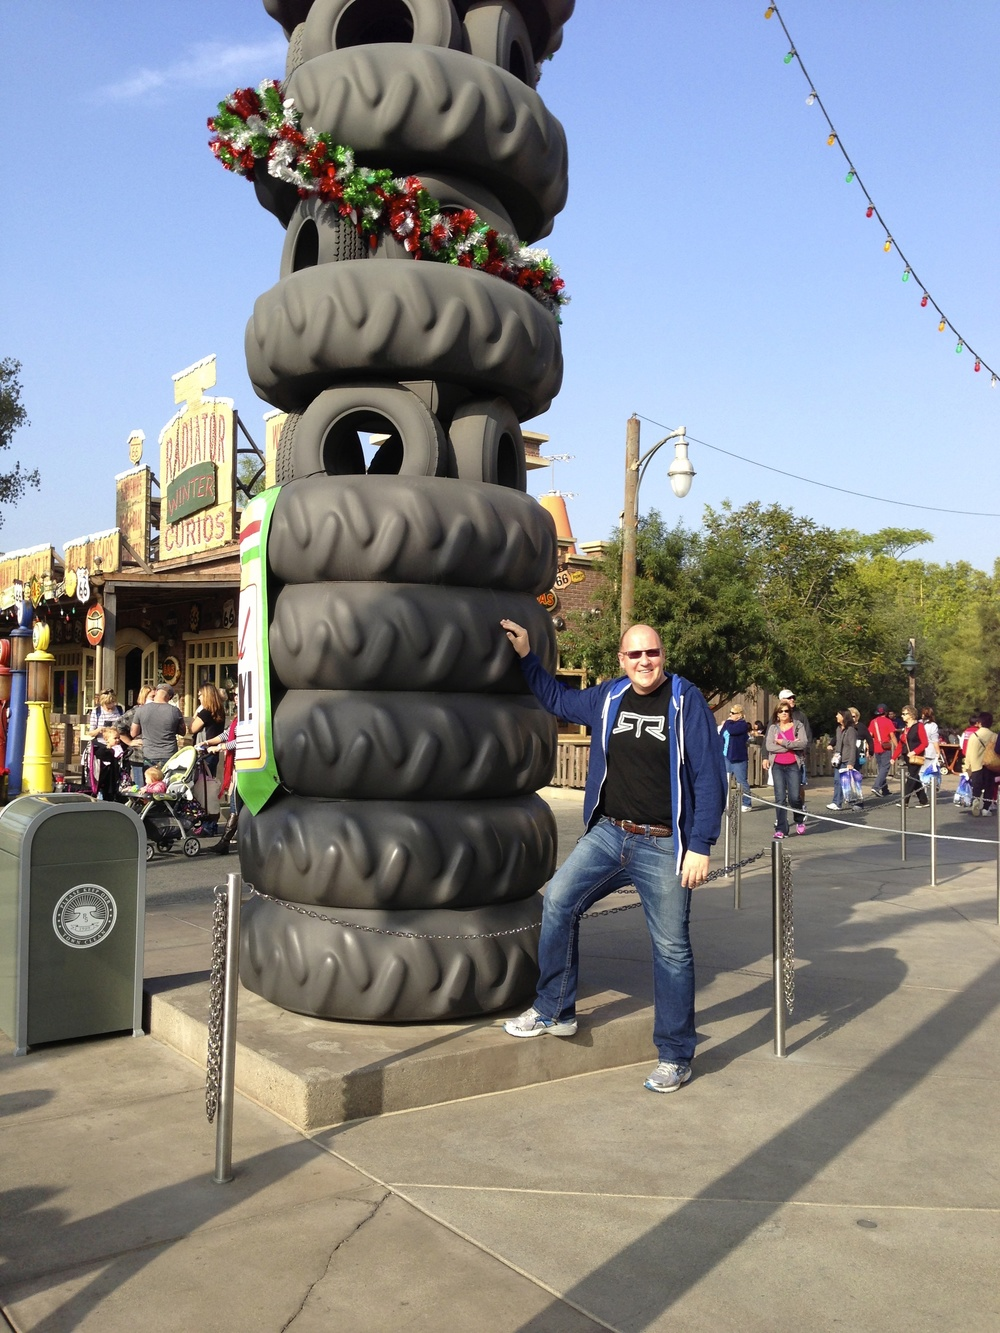 Tire Christmas Tree. I think this stack of tires is probably a fixture in the land, but they decorated it for the holidays.